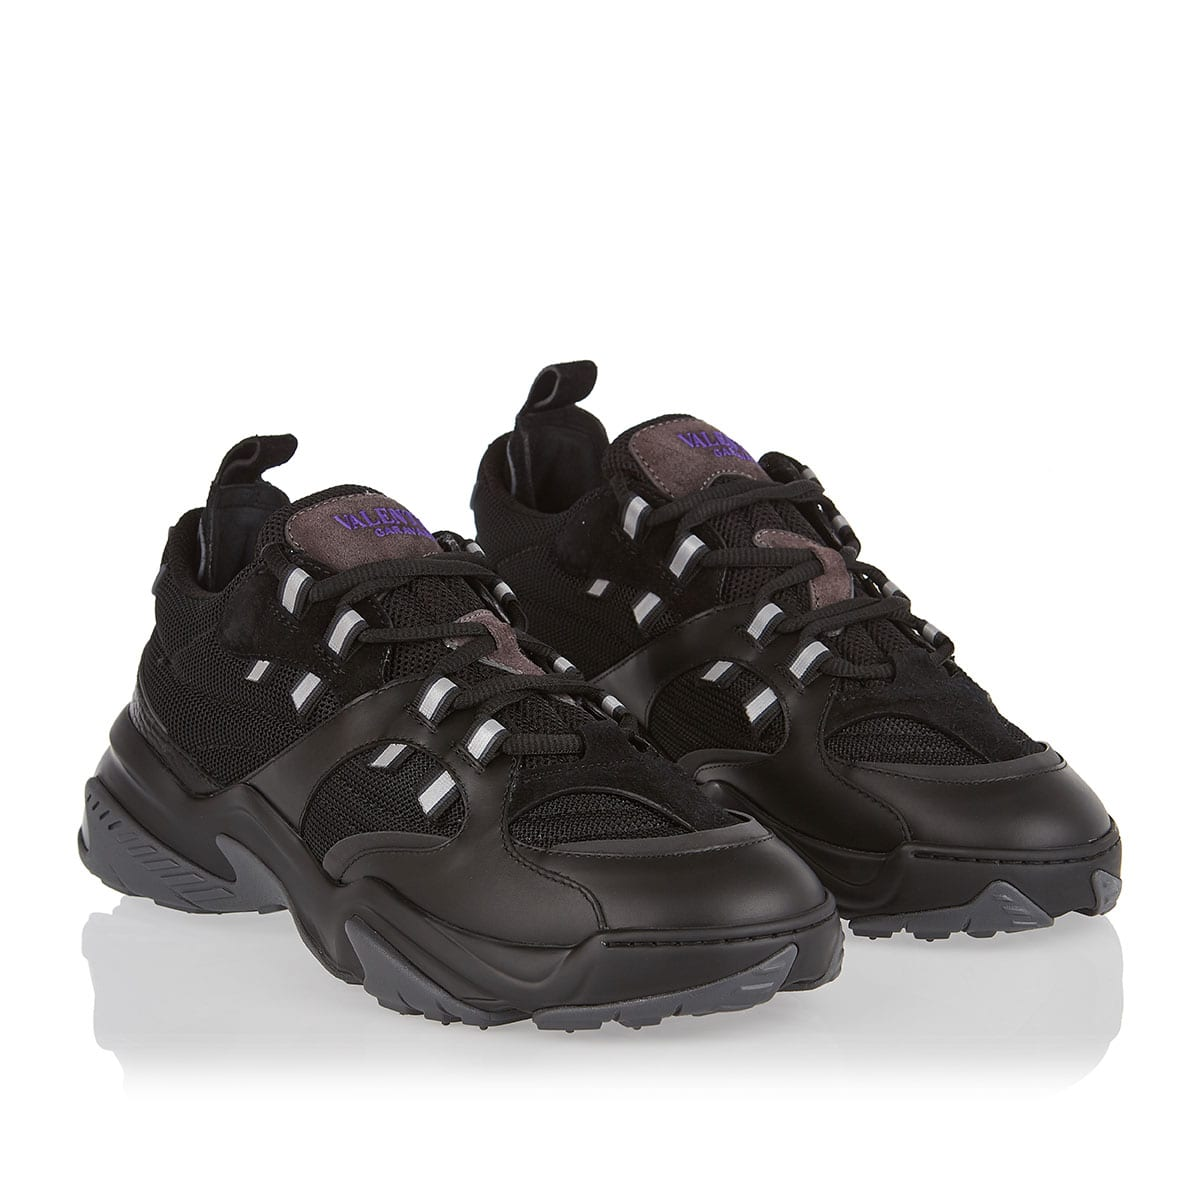 Afterdusk technical mesh sneakers